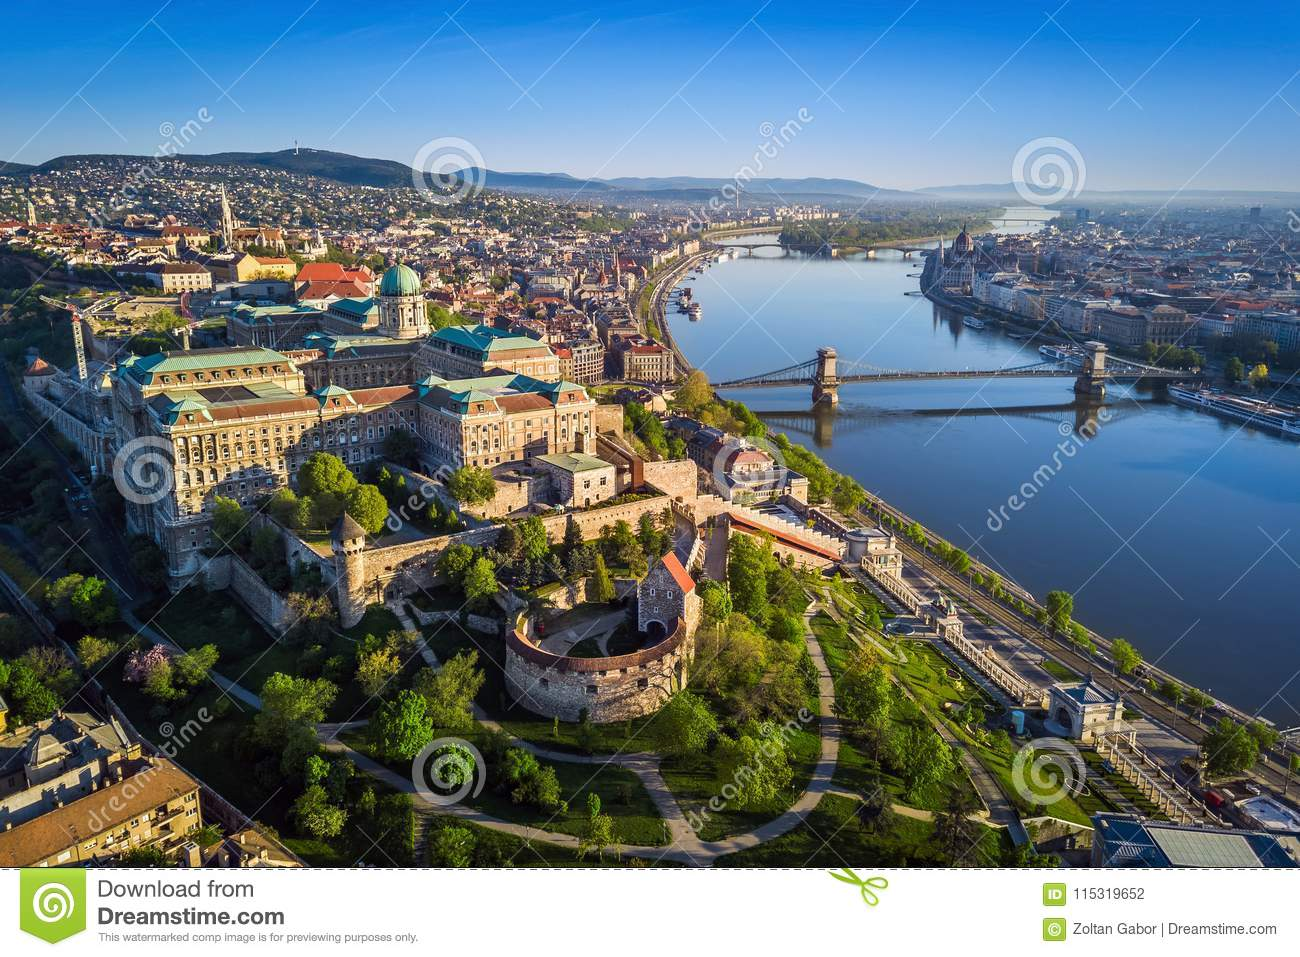 Budapest, Hungary - Beautiful aerial skyline view of Buda Castle Royal Palace and South Rondella at sunset